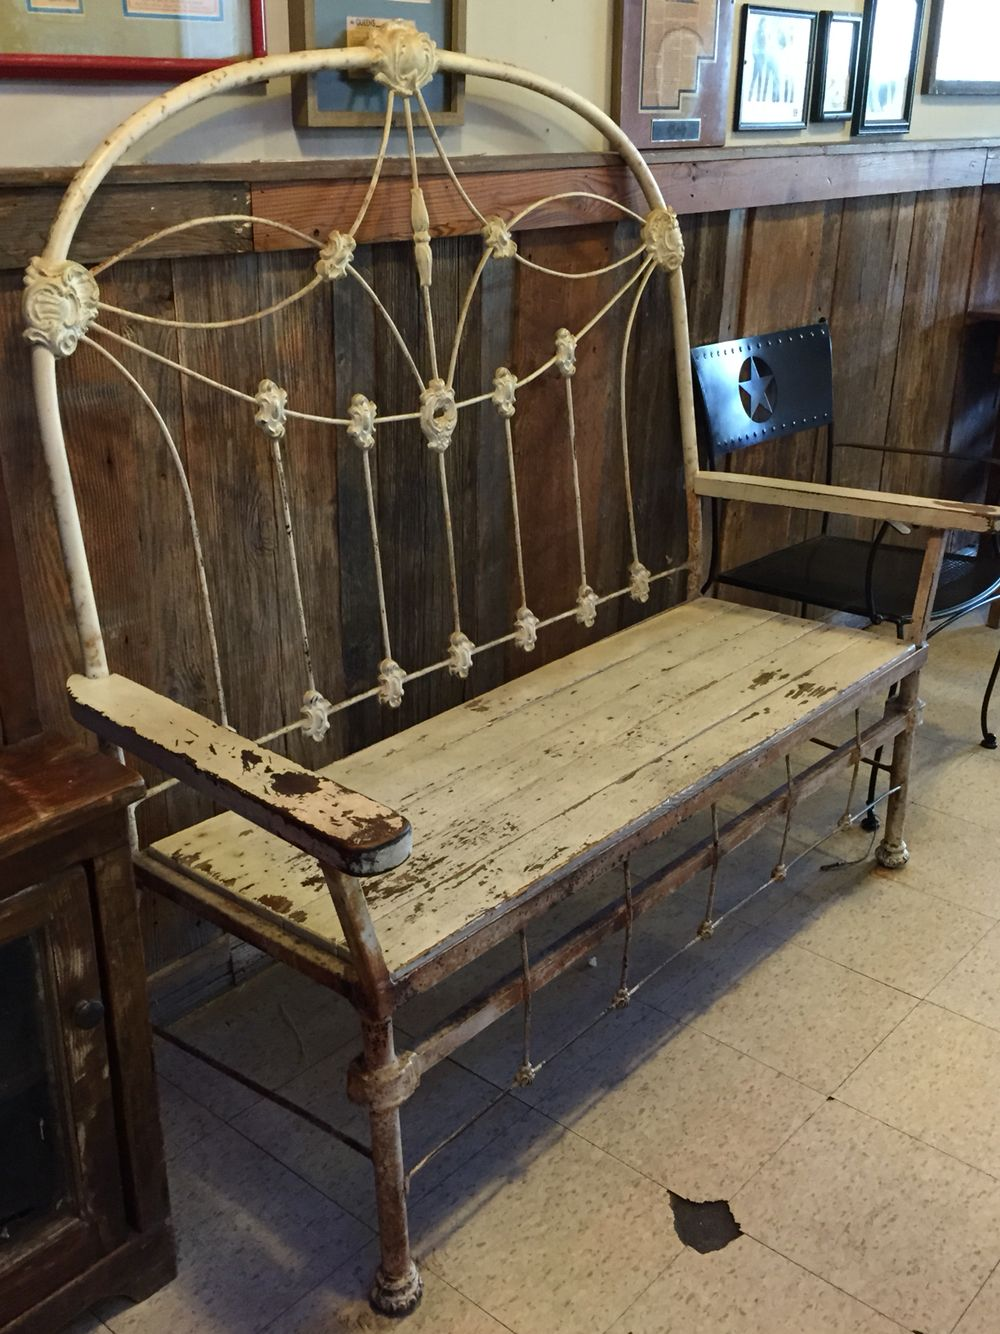 Antique Bed Stool: #antique Iron Bed & #reclaimed Wood Made Into A Bench